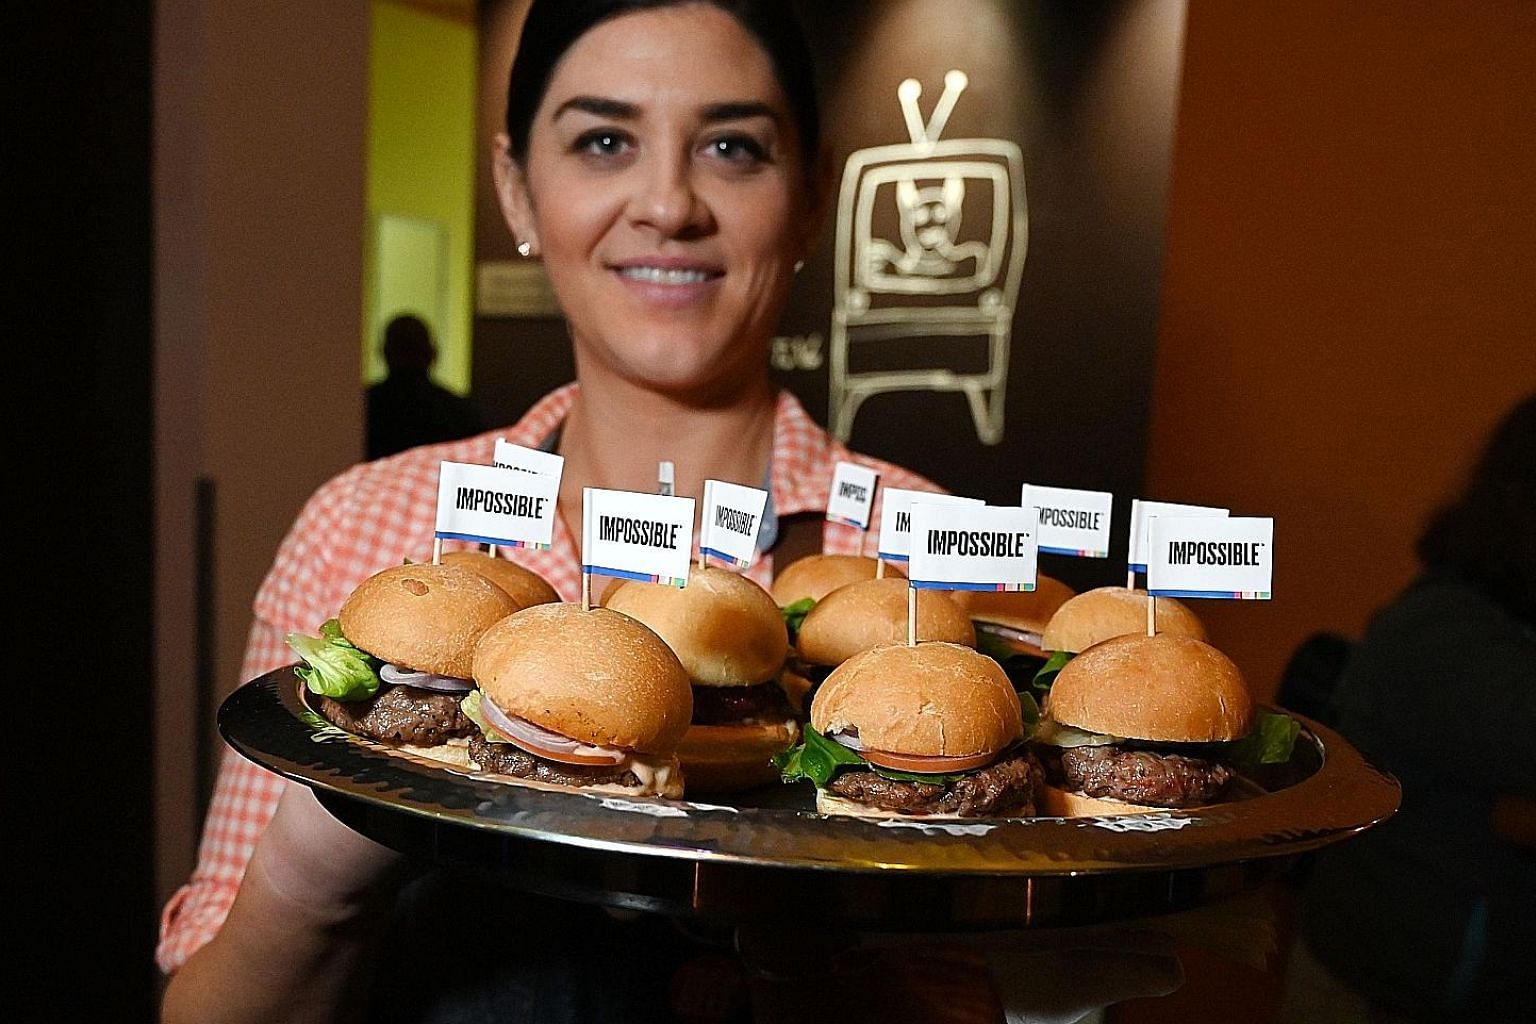 The Impossible Burger 2.0, the new version of Impossible Foods' plant-based vegan burger that tastes like real beef.